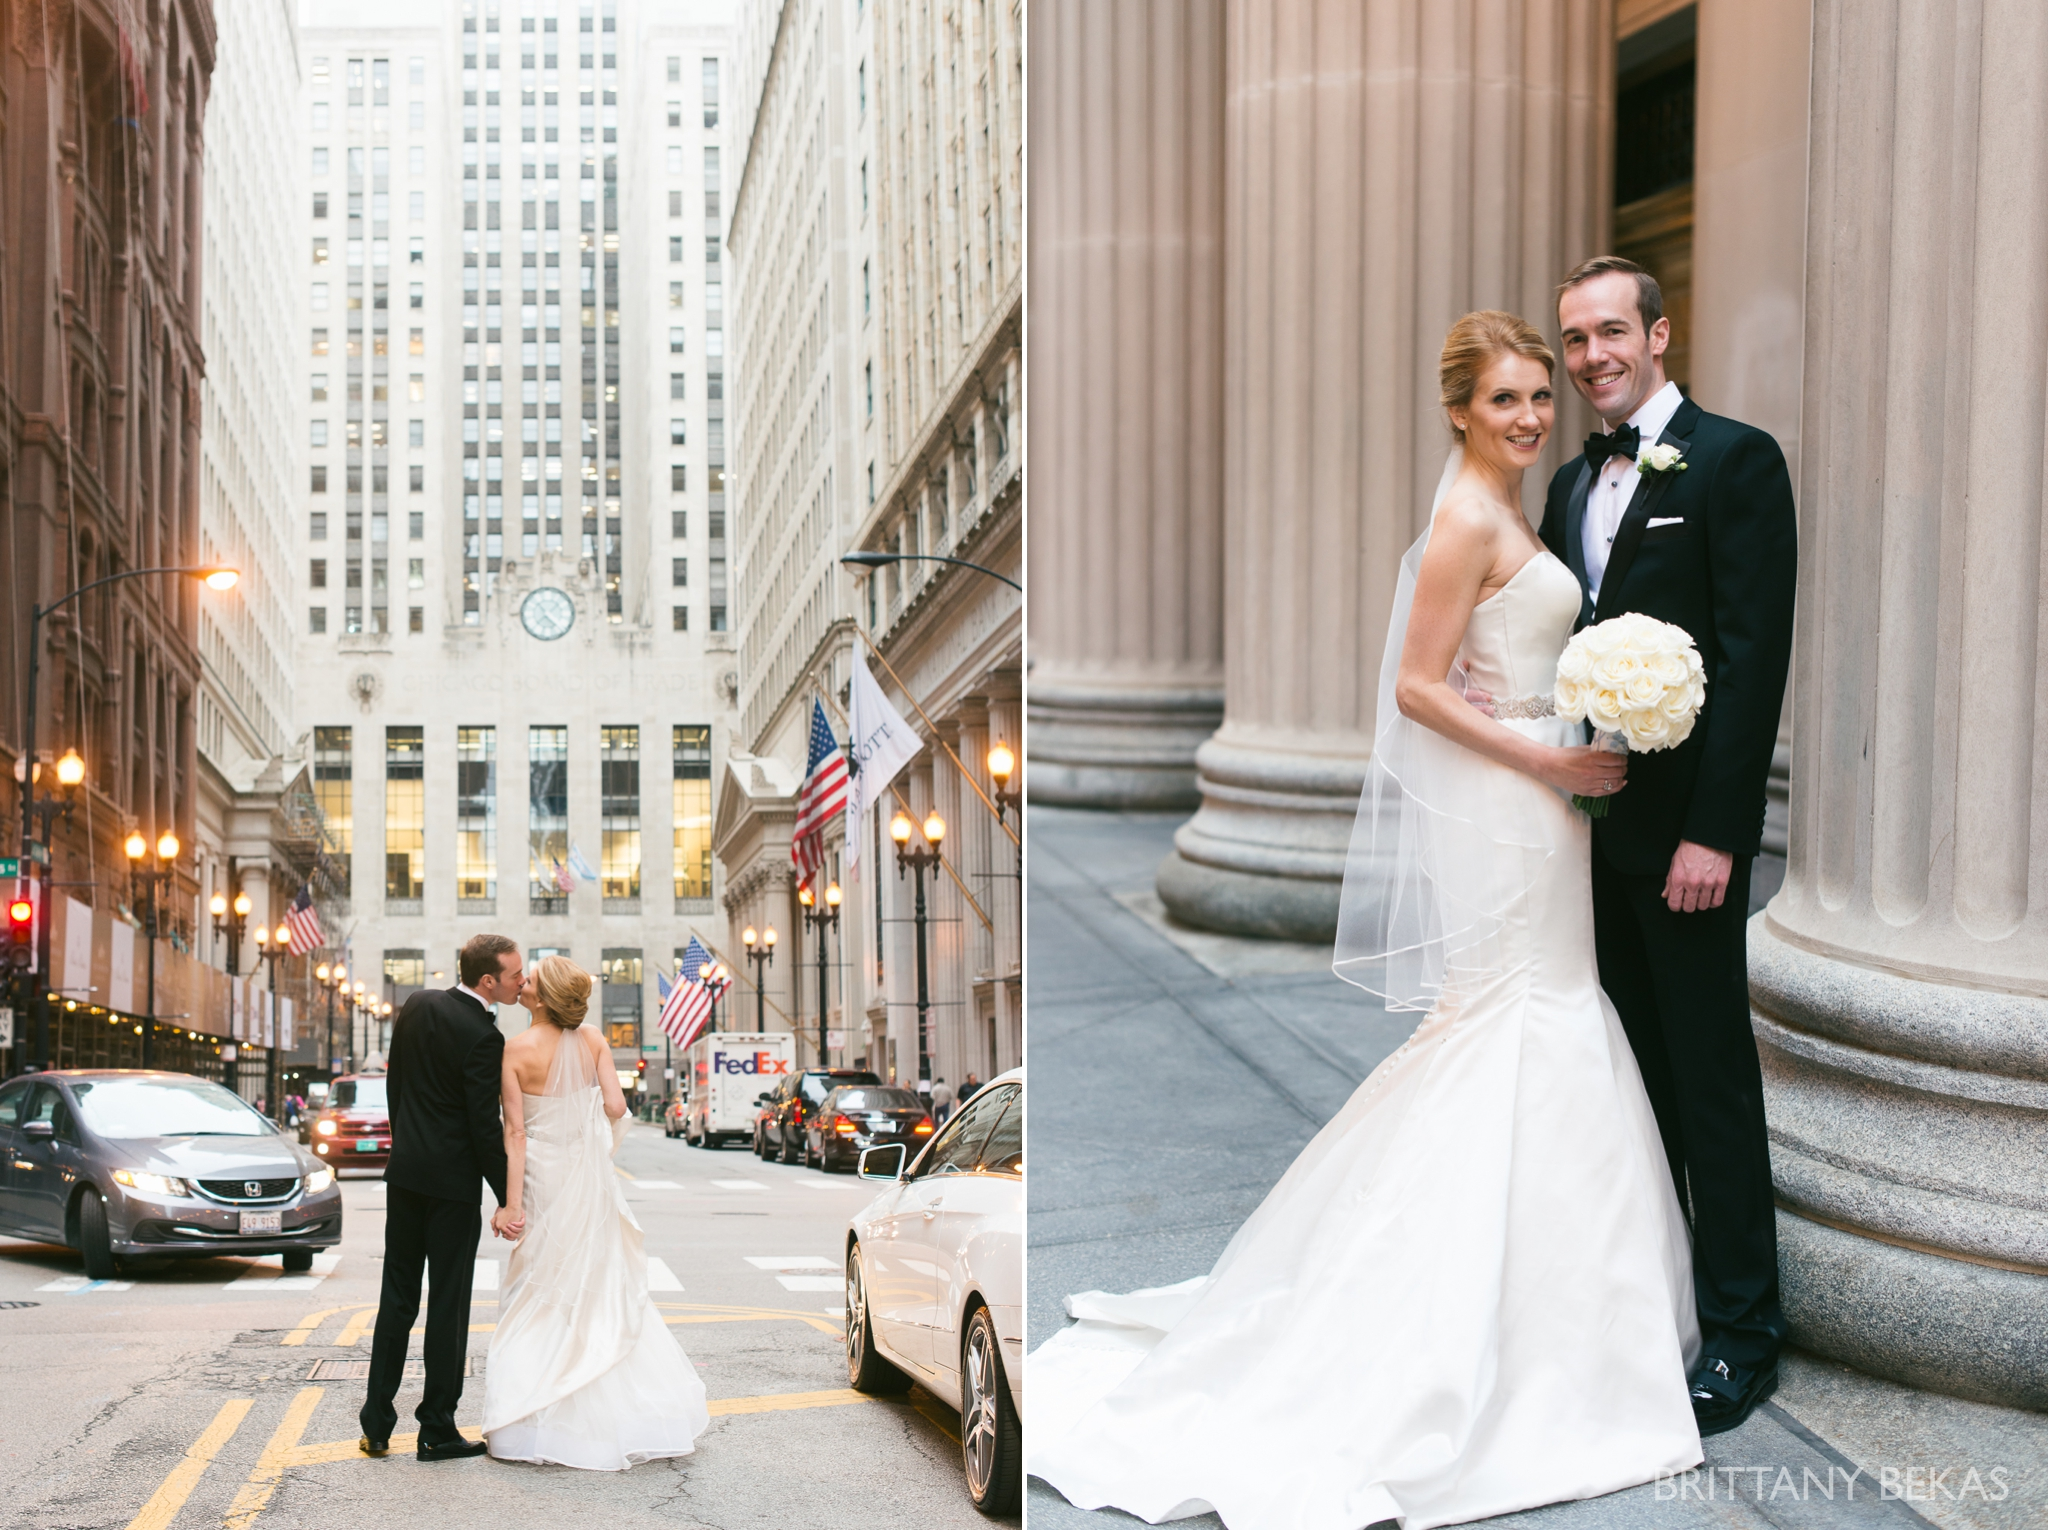 Chicago Wedding Hotel Allegro Wedding Photos - Brittany Bekas Photography_0016